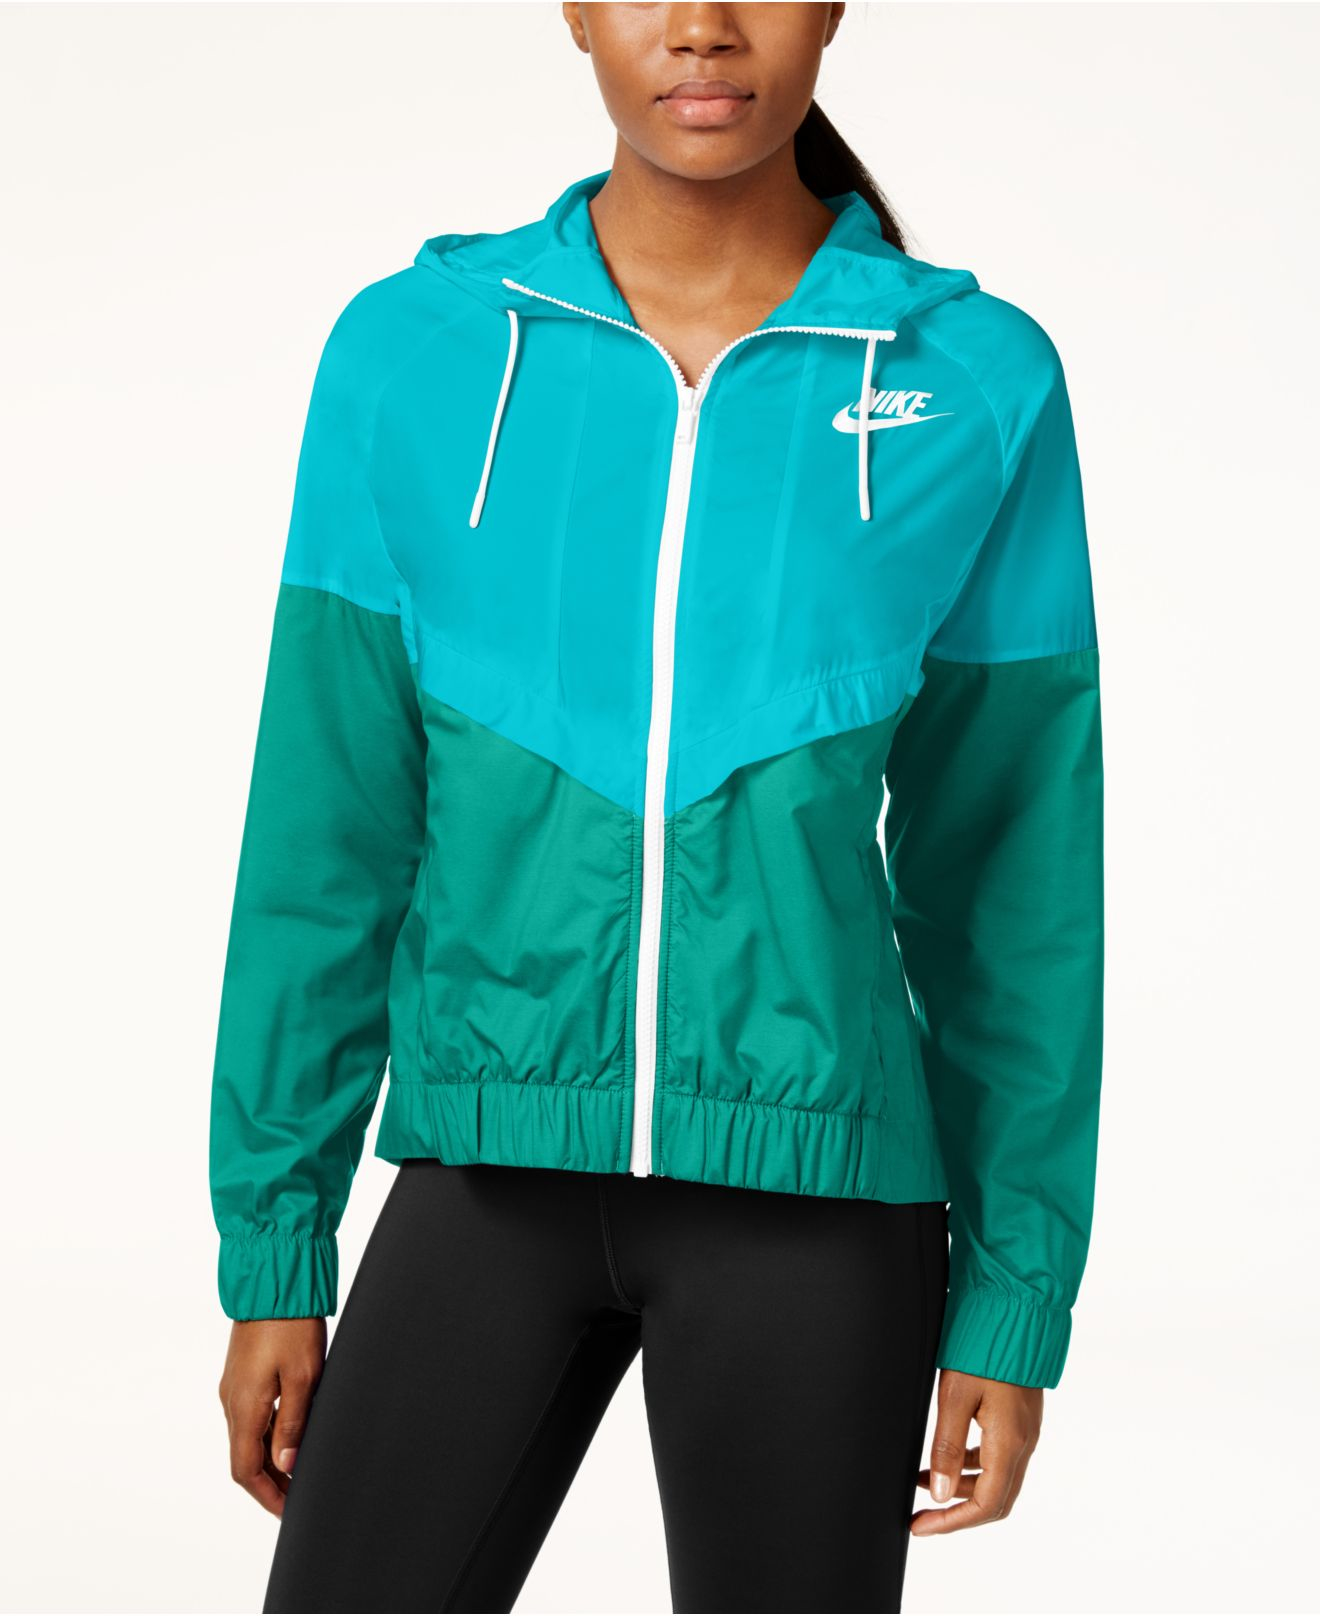 43e58872fd14 Lyst - Nike Wind Runner Colorblocked Jacket in Blue